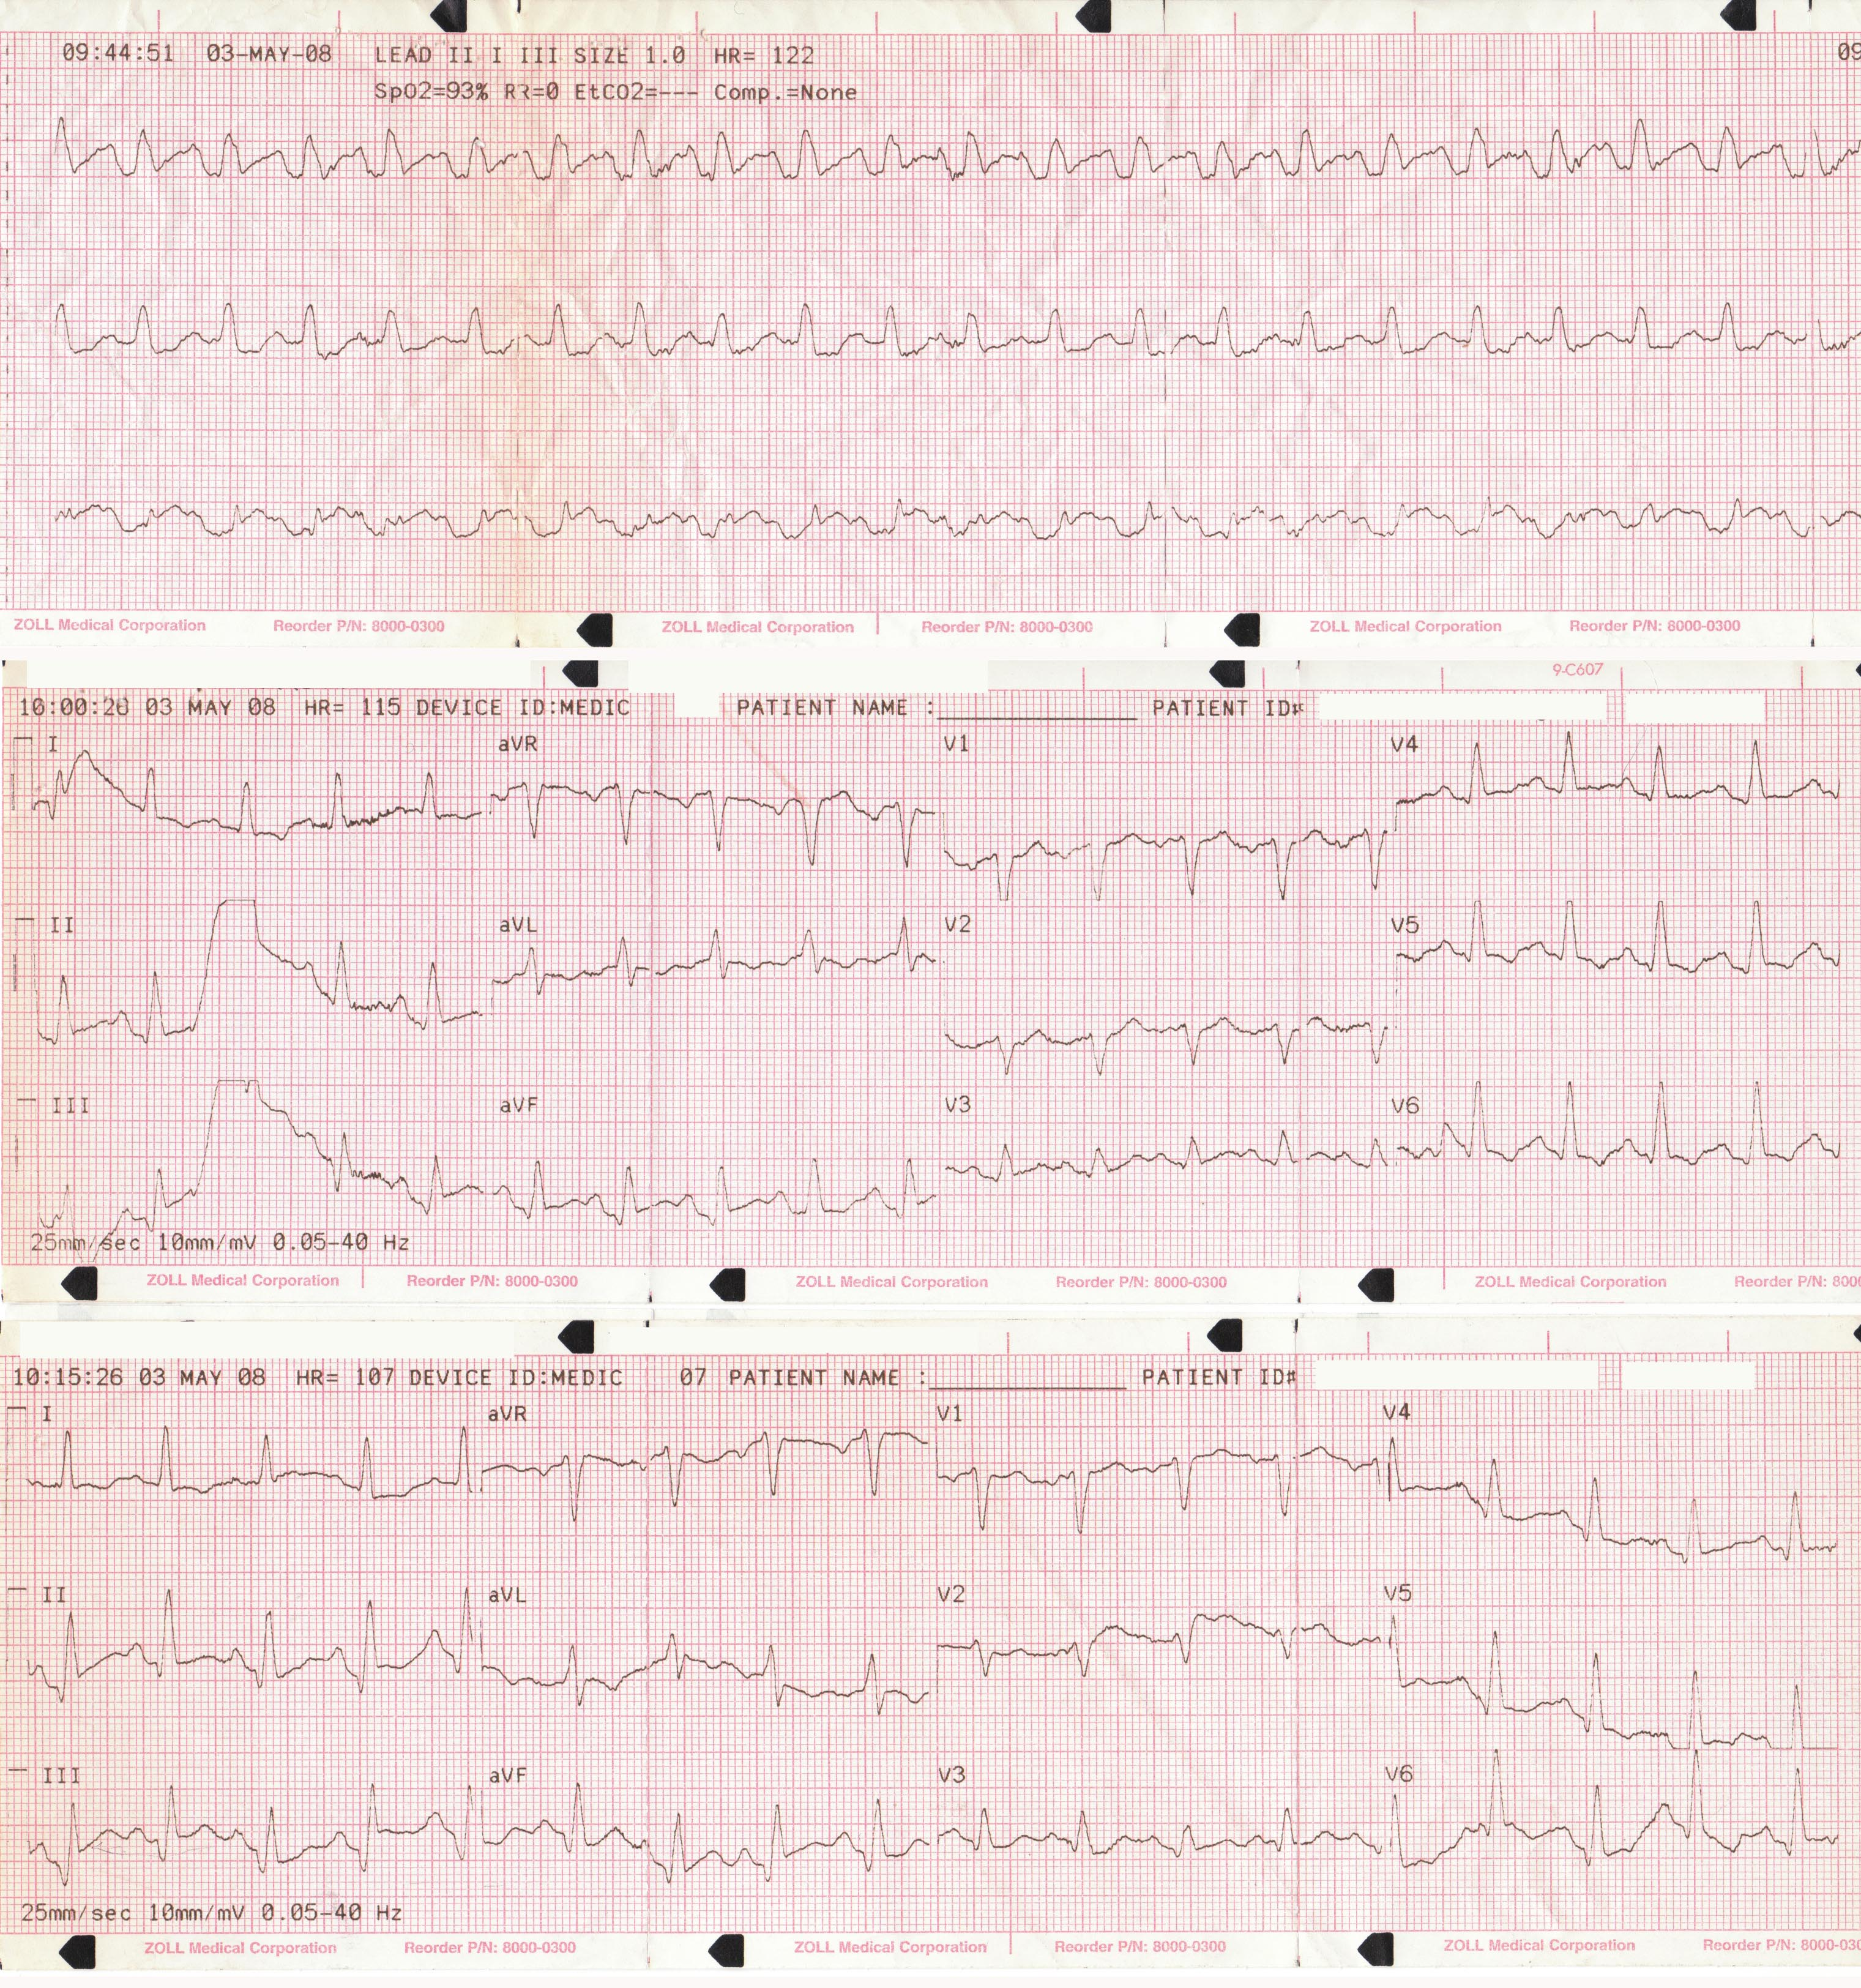 nursing case study and patient education on miocardial infarction Myocardial infarction (mi), is used synonymously with coronary occlusion and heart attack, yet mi is the most preferred term as myocardial ischemia causes acute coronary syndrome (acs) that can result in myocardial death in each case of mi, a profound imbalance exists between myocardial oxygen.